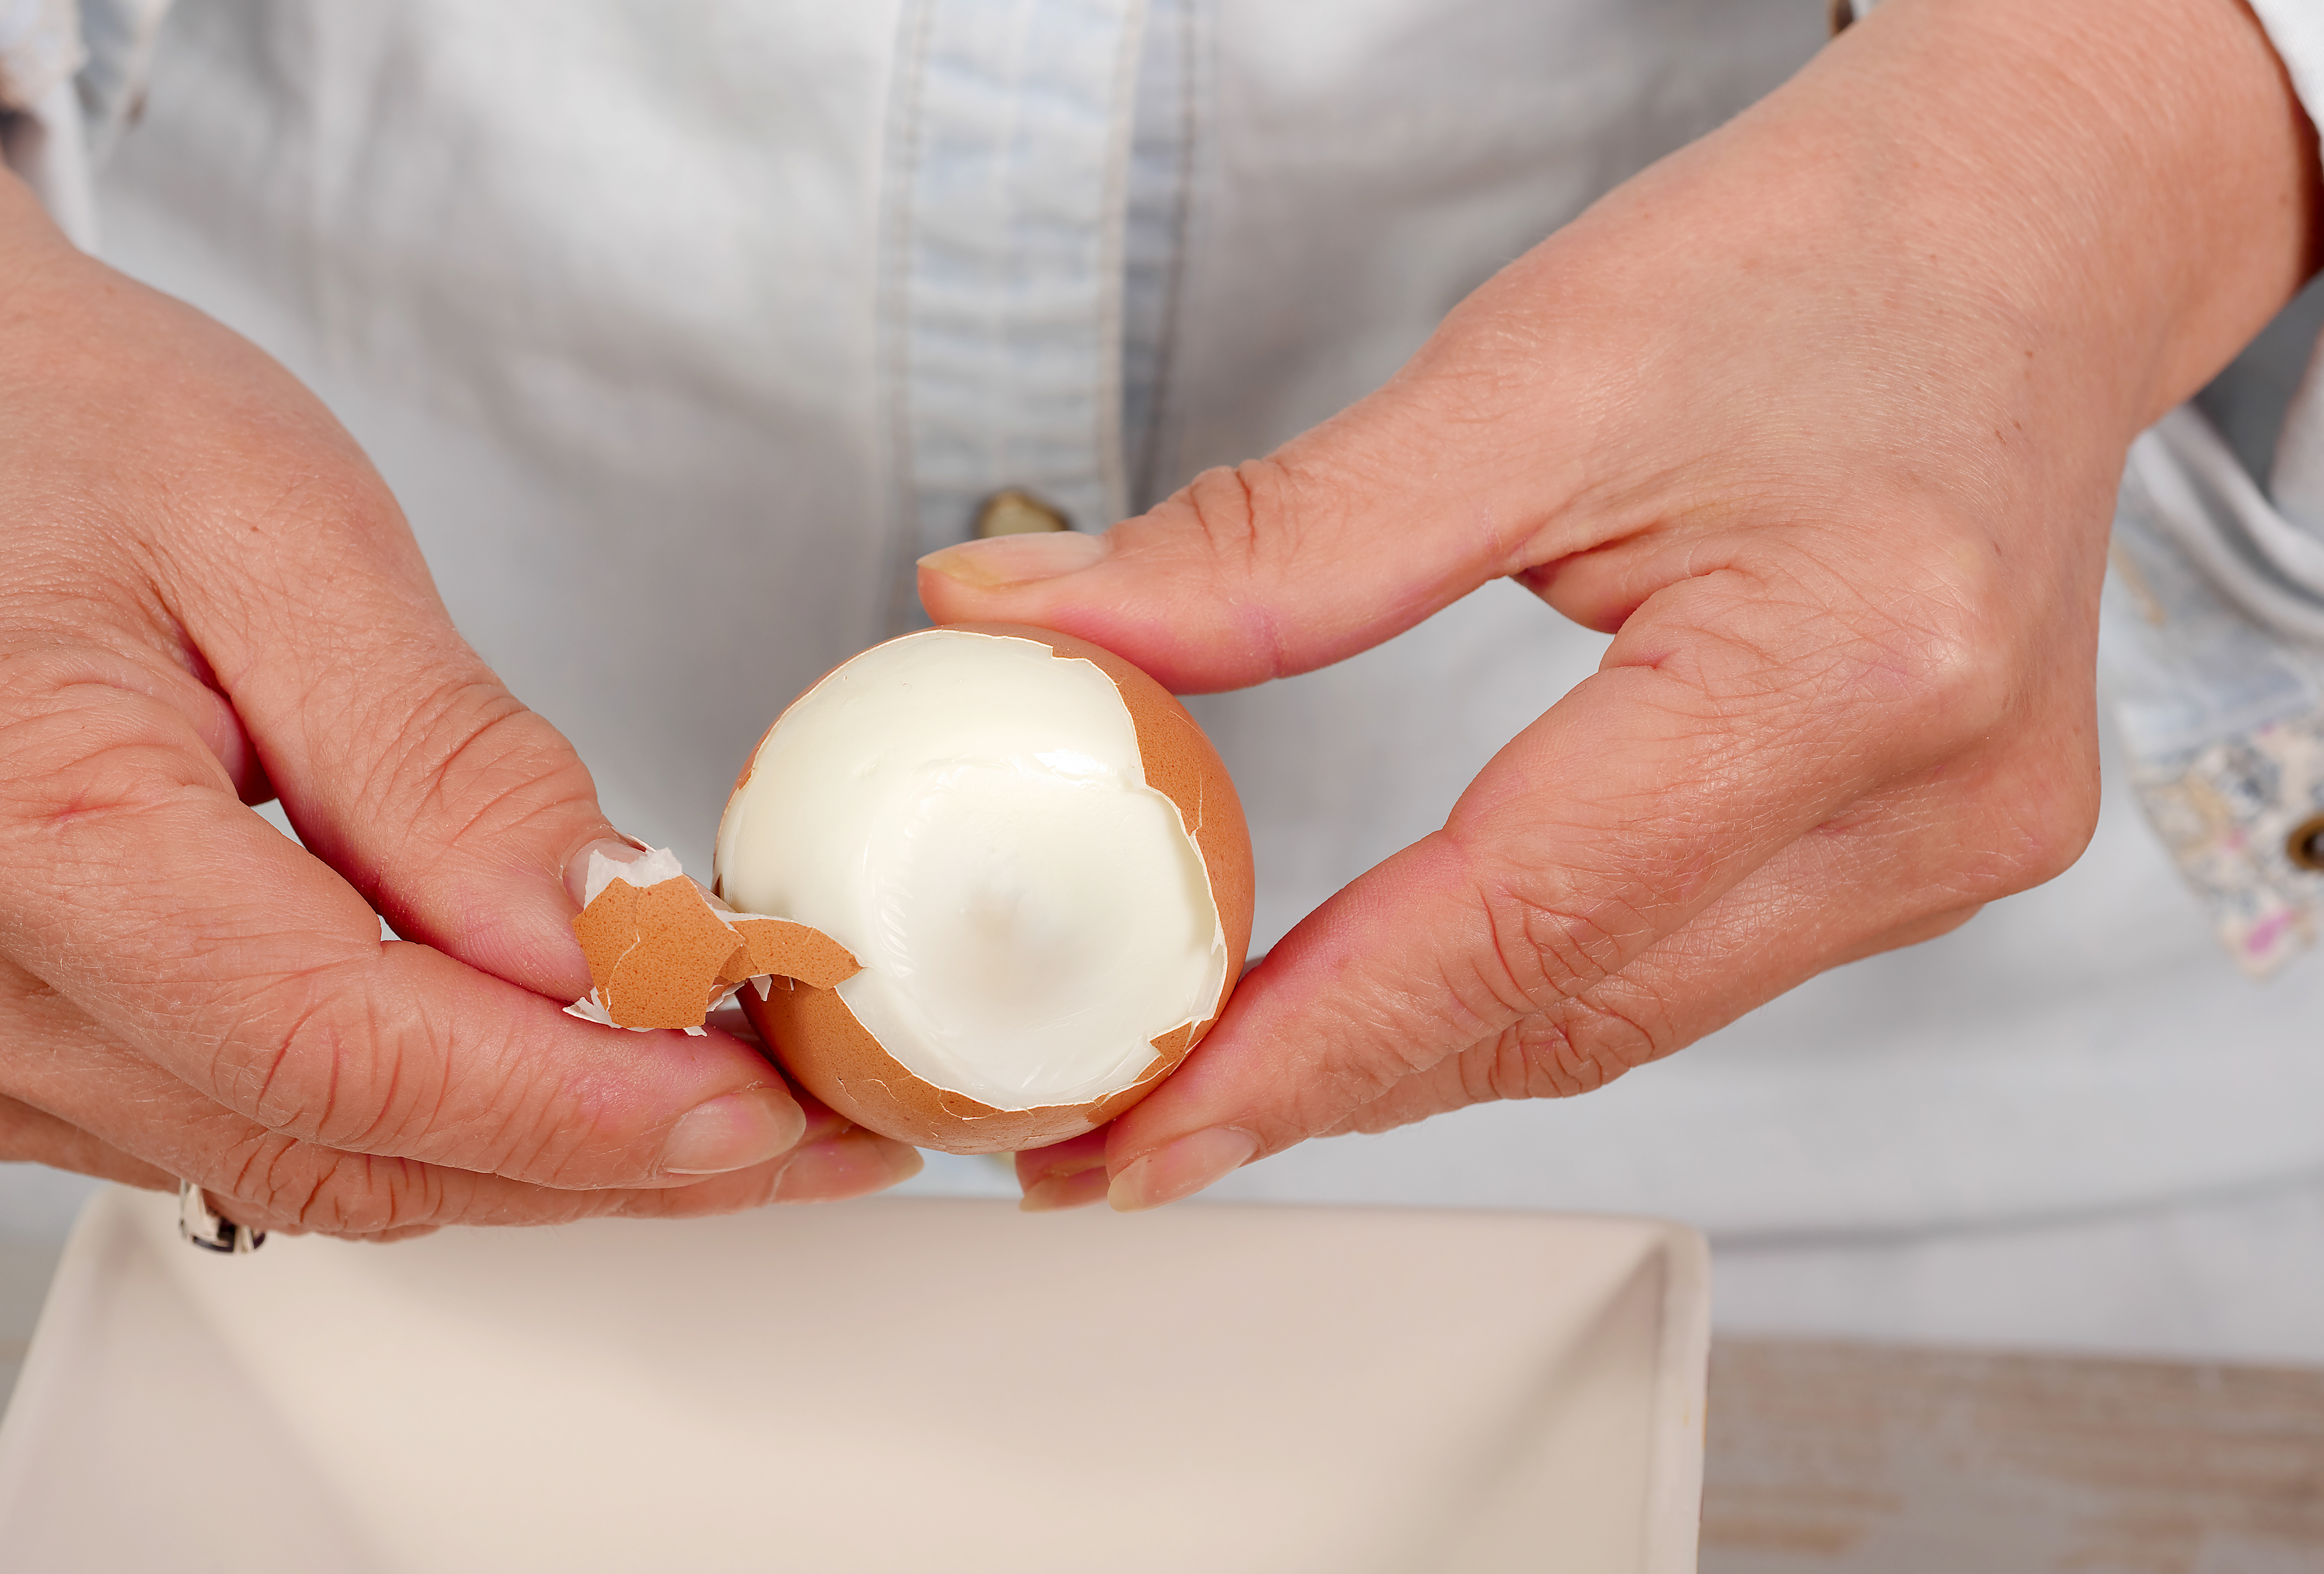 How to peel hard-boiled eggs